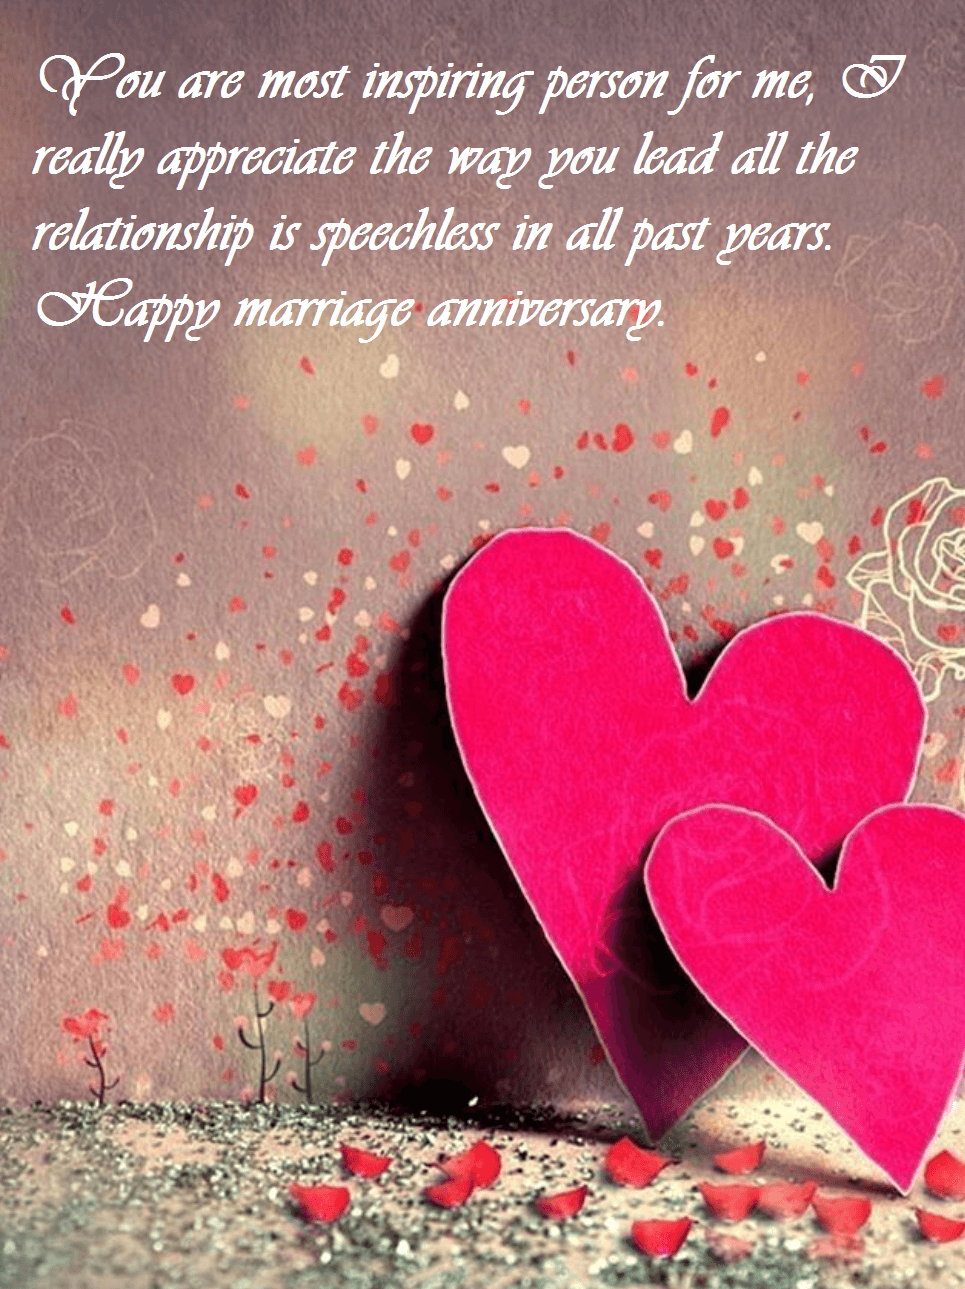 Anniversary Wishes Quotes For Wife With Love Images Best Wishes Anniversary Wishes Quotes Anniversary Wishes For Wife Happy Anniversary Quotes